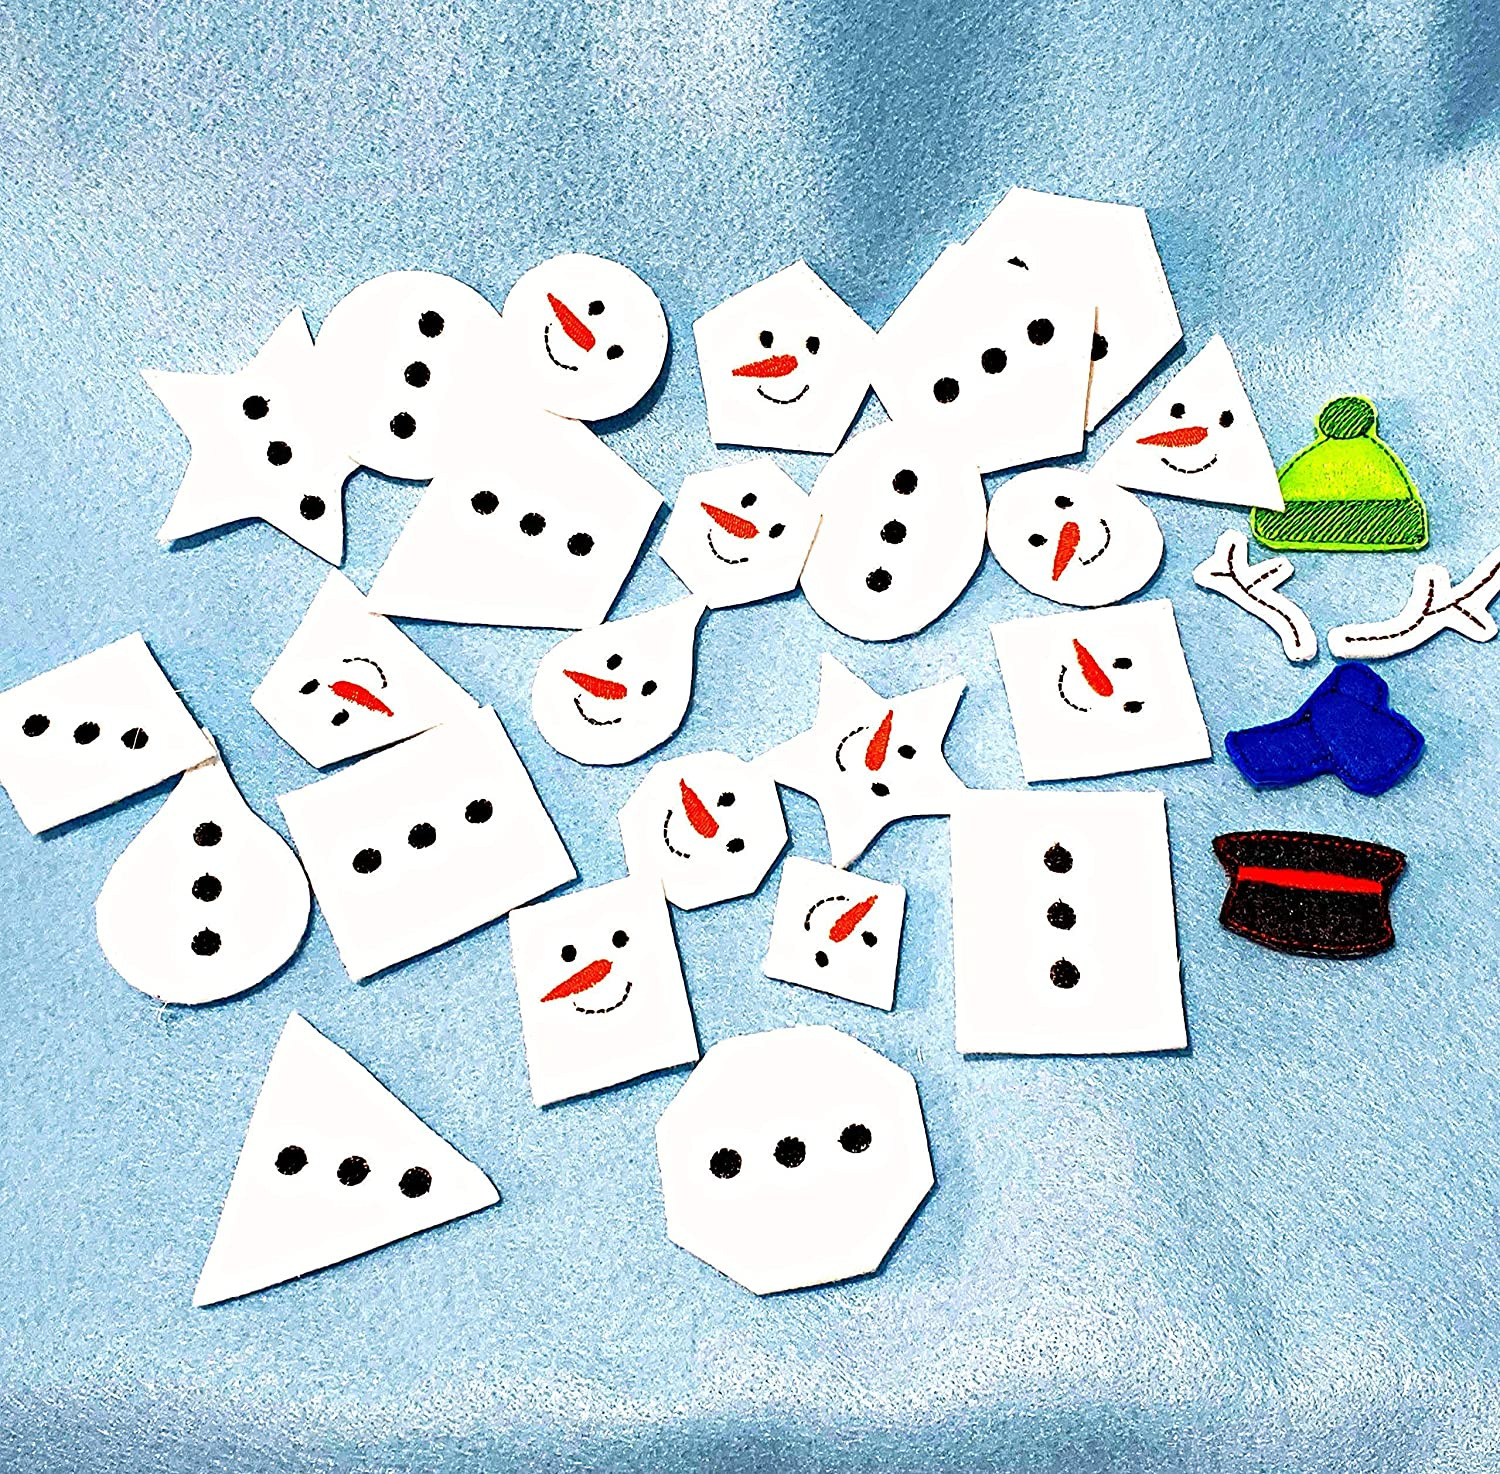 #3939 Snowman matching shapes game for shape identification